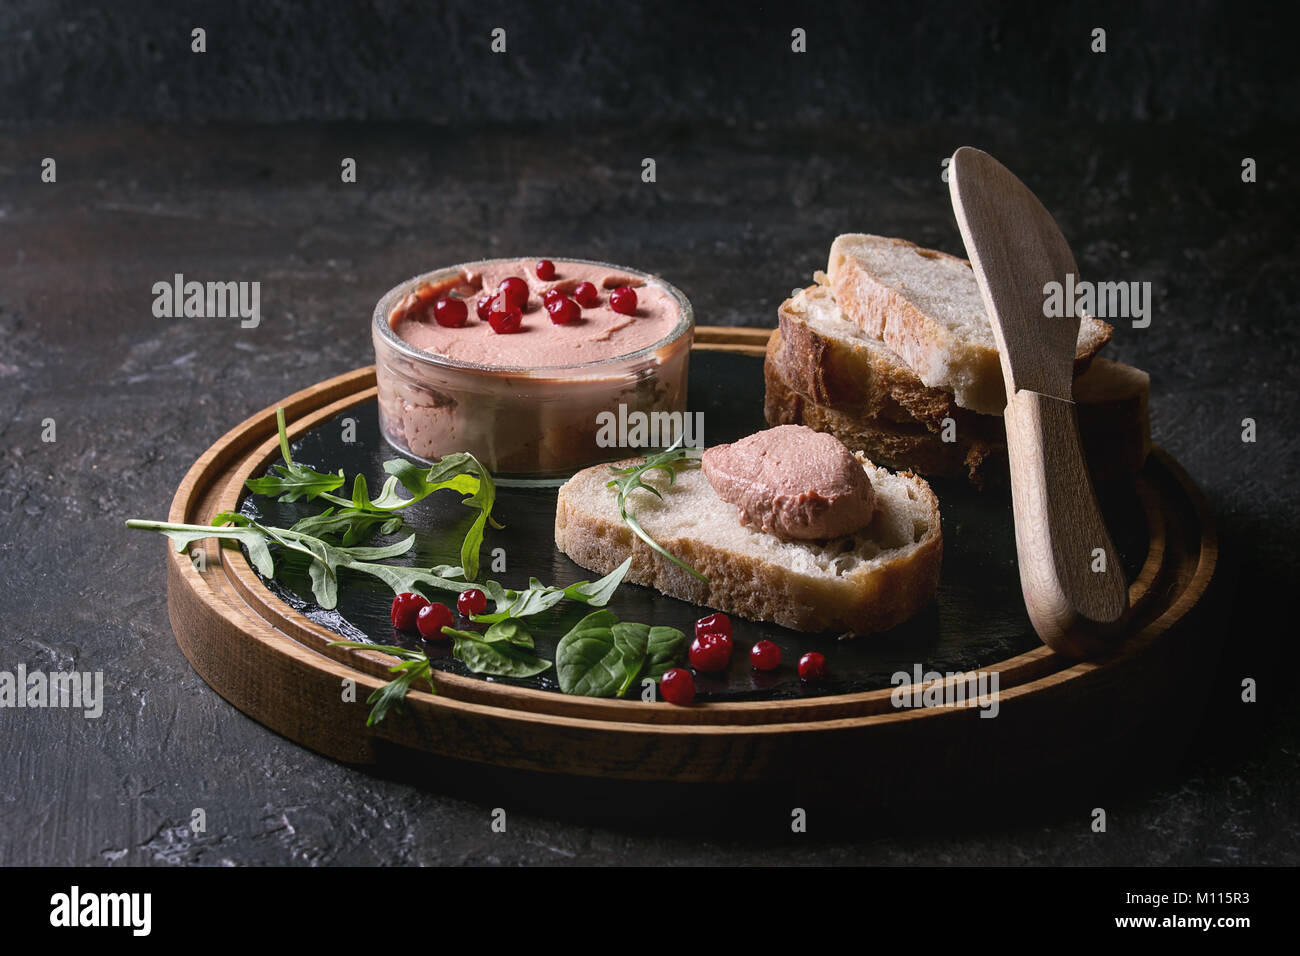 Liver paste with bread - Stock Image